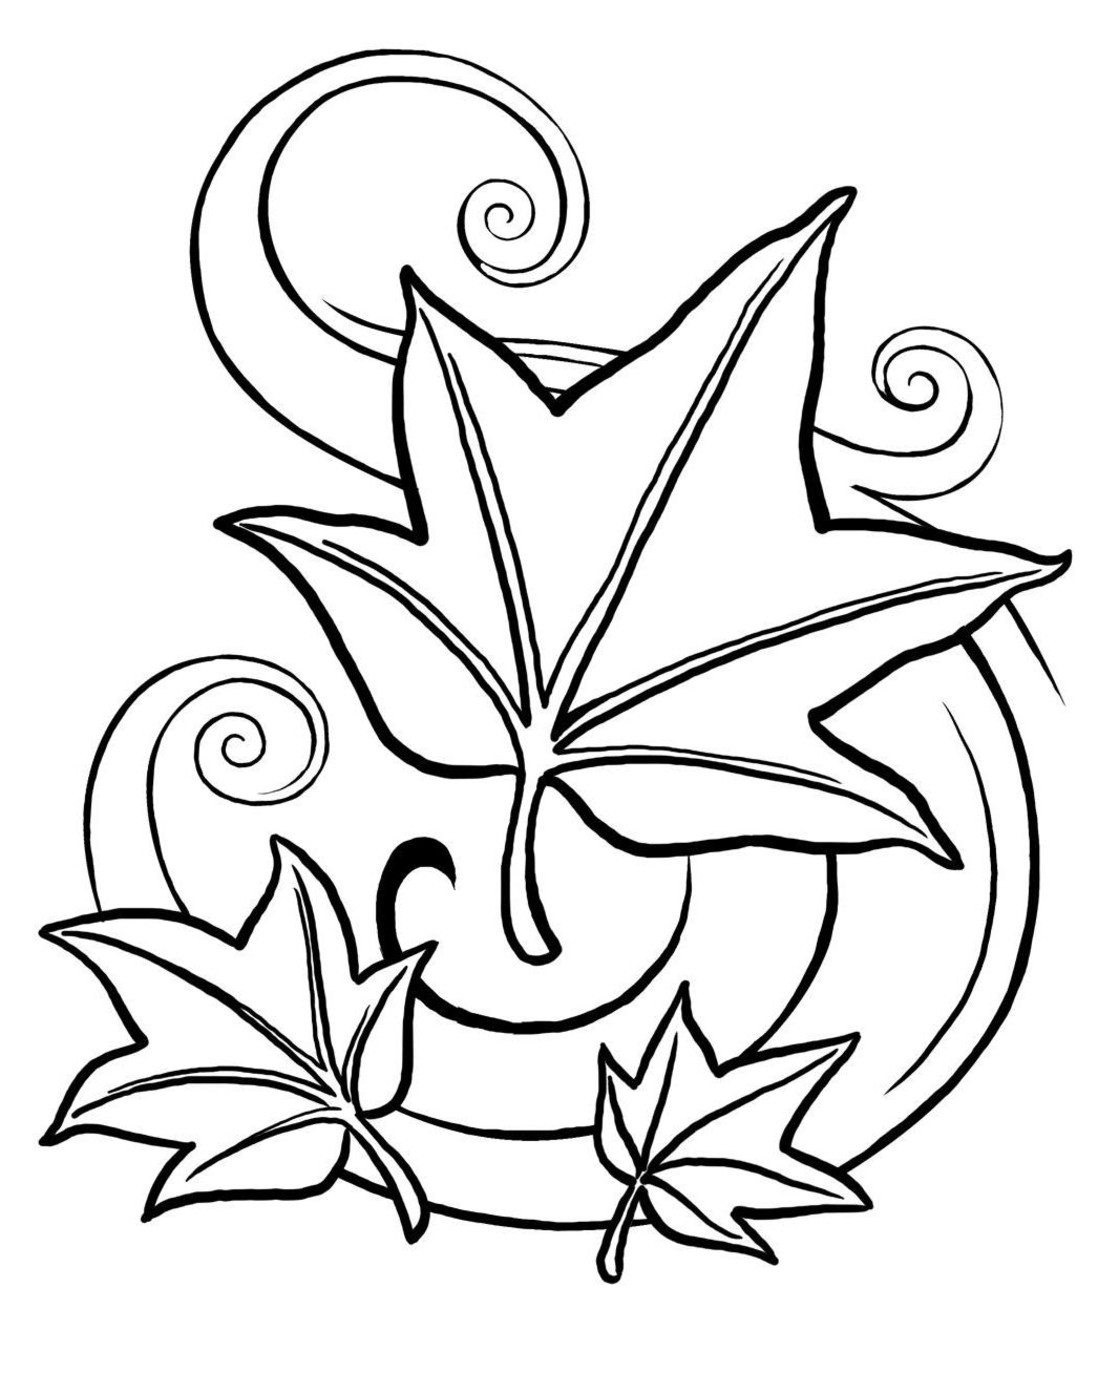 coloring pages leaves fall fall leaves coloring pages clipart panda free clipart leaves pages coloring fall